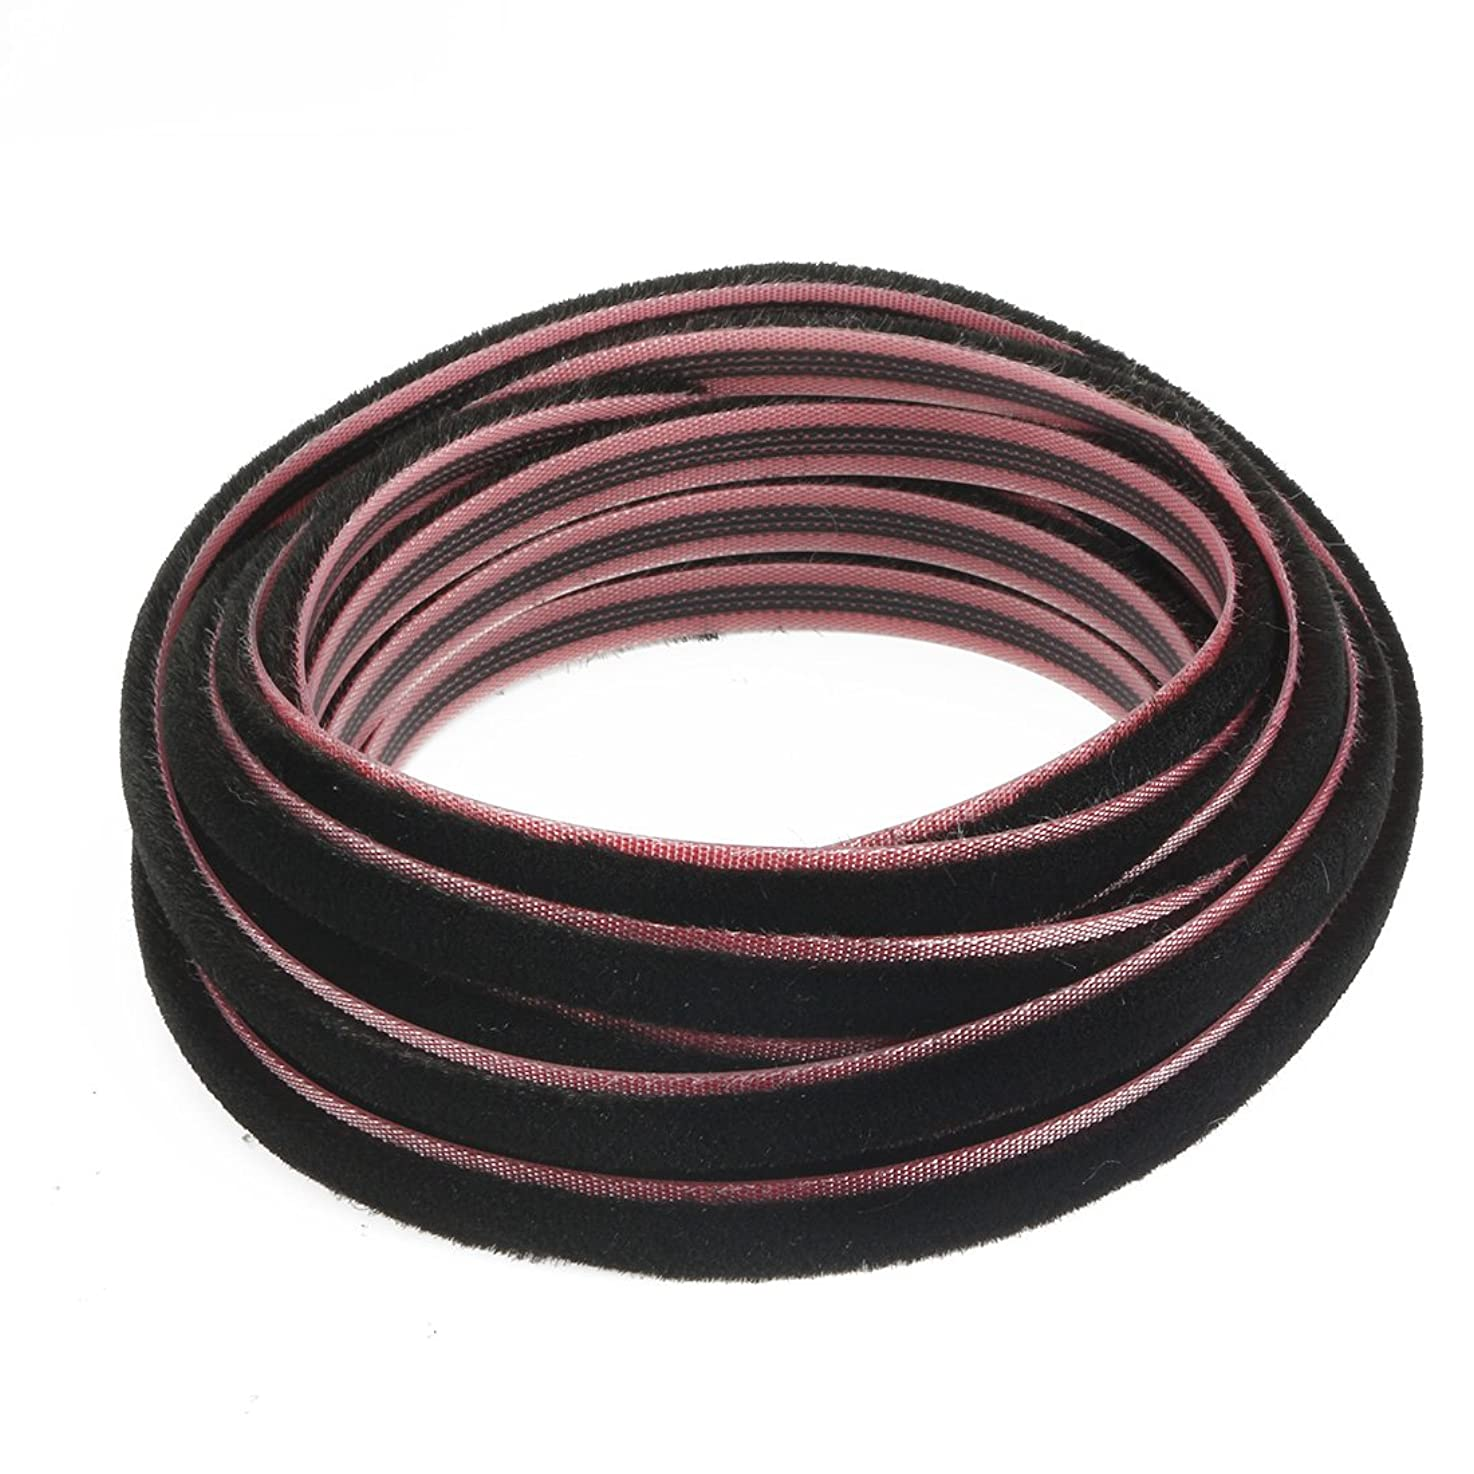 uxcell Window Weather Seal Strip 3/8-Inch x 1/4-Inch x 19.7 Feet